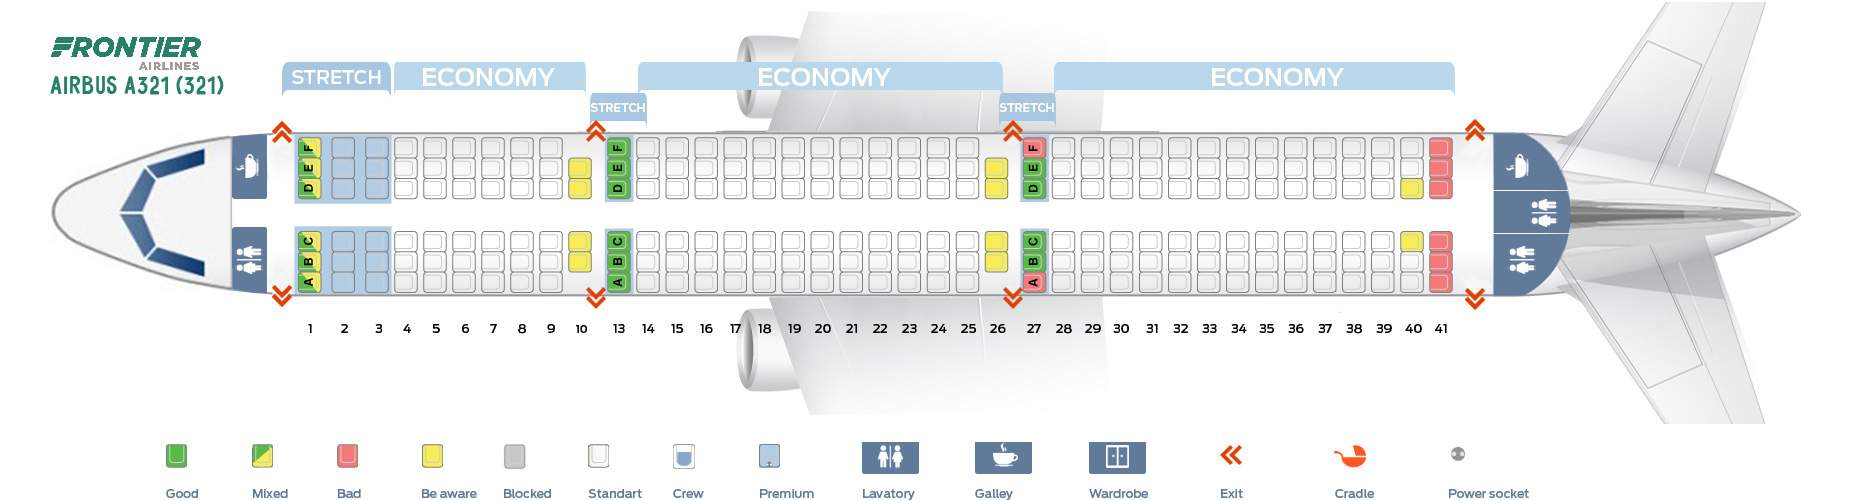 Seat Map Airbus Frontier Airlines Best Seats